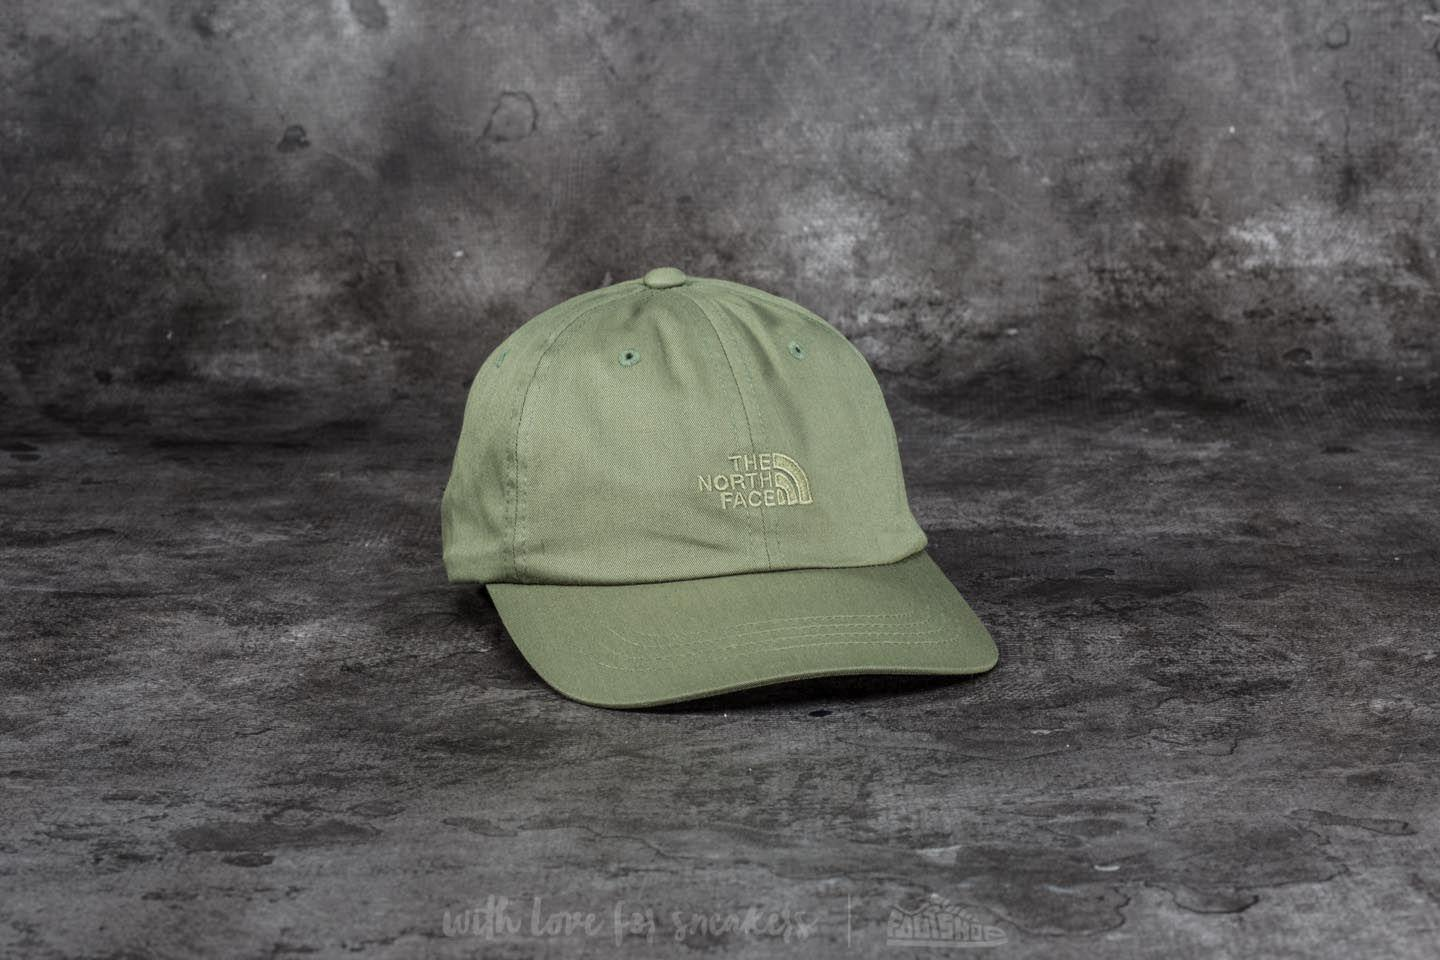 253821039a0 Lyst - Footshop The North Face The Norm Hat Burnt Olive Green in ...